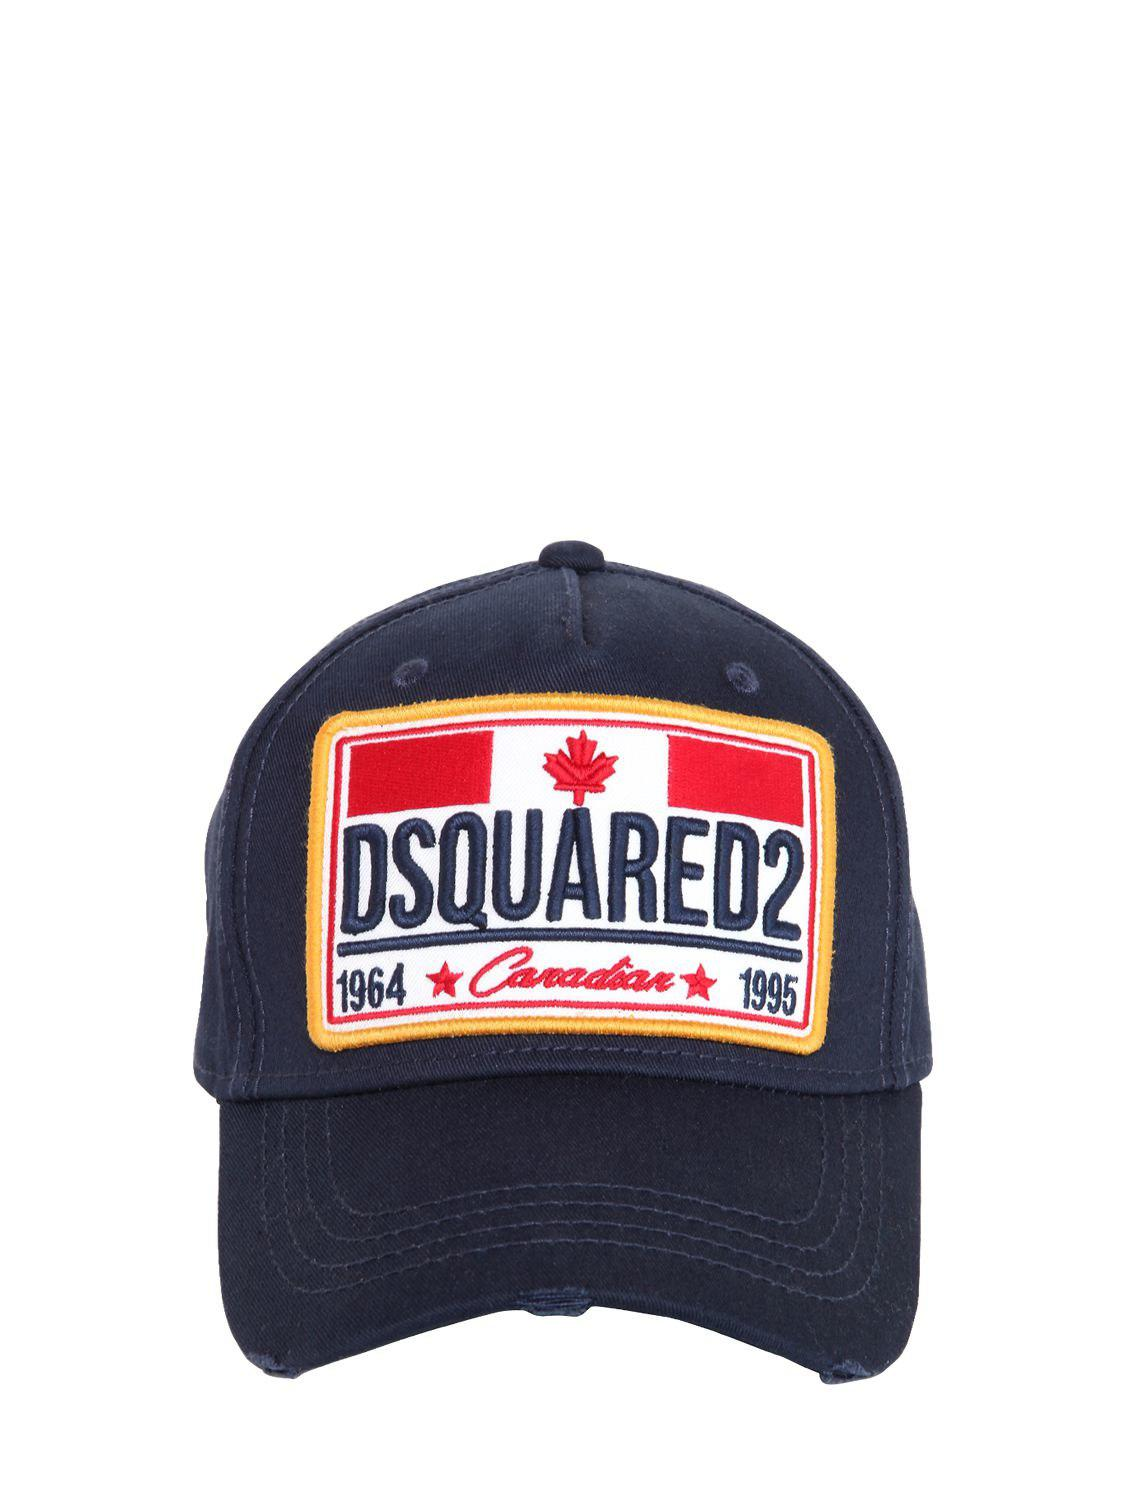 fdcad83c59800 Lyst - DSquared² Canadian Flag Patch Cotton Baseball Hat in Blue for Men